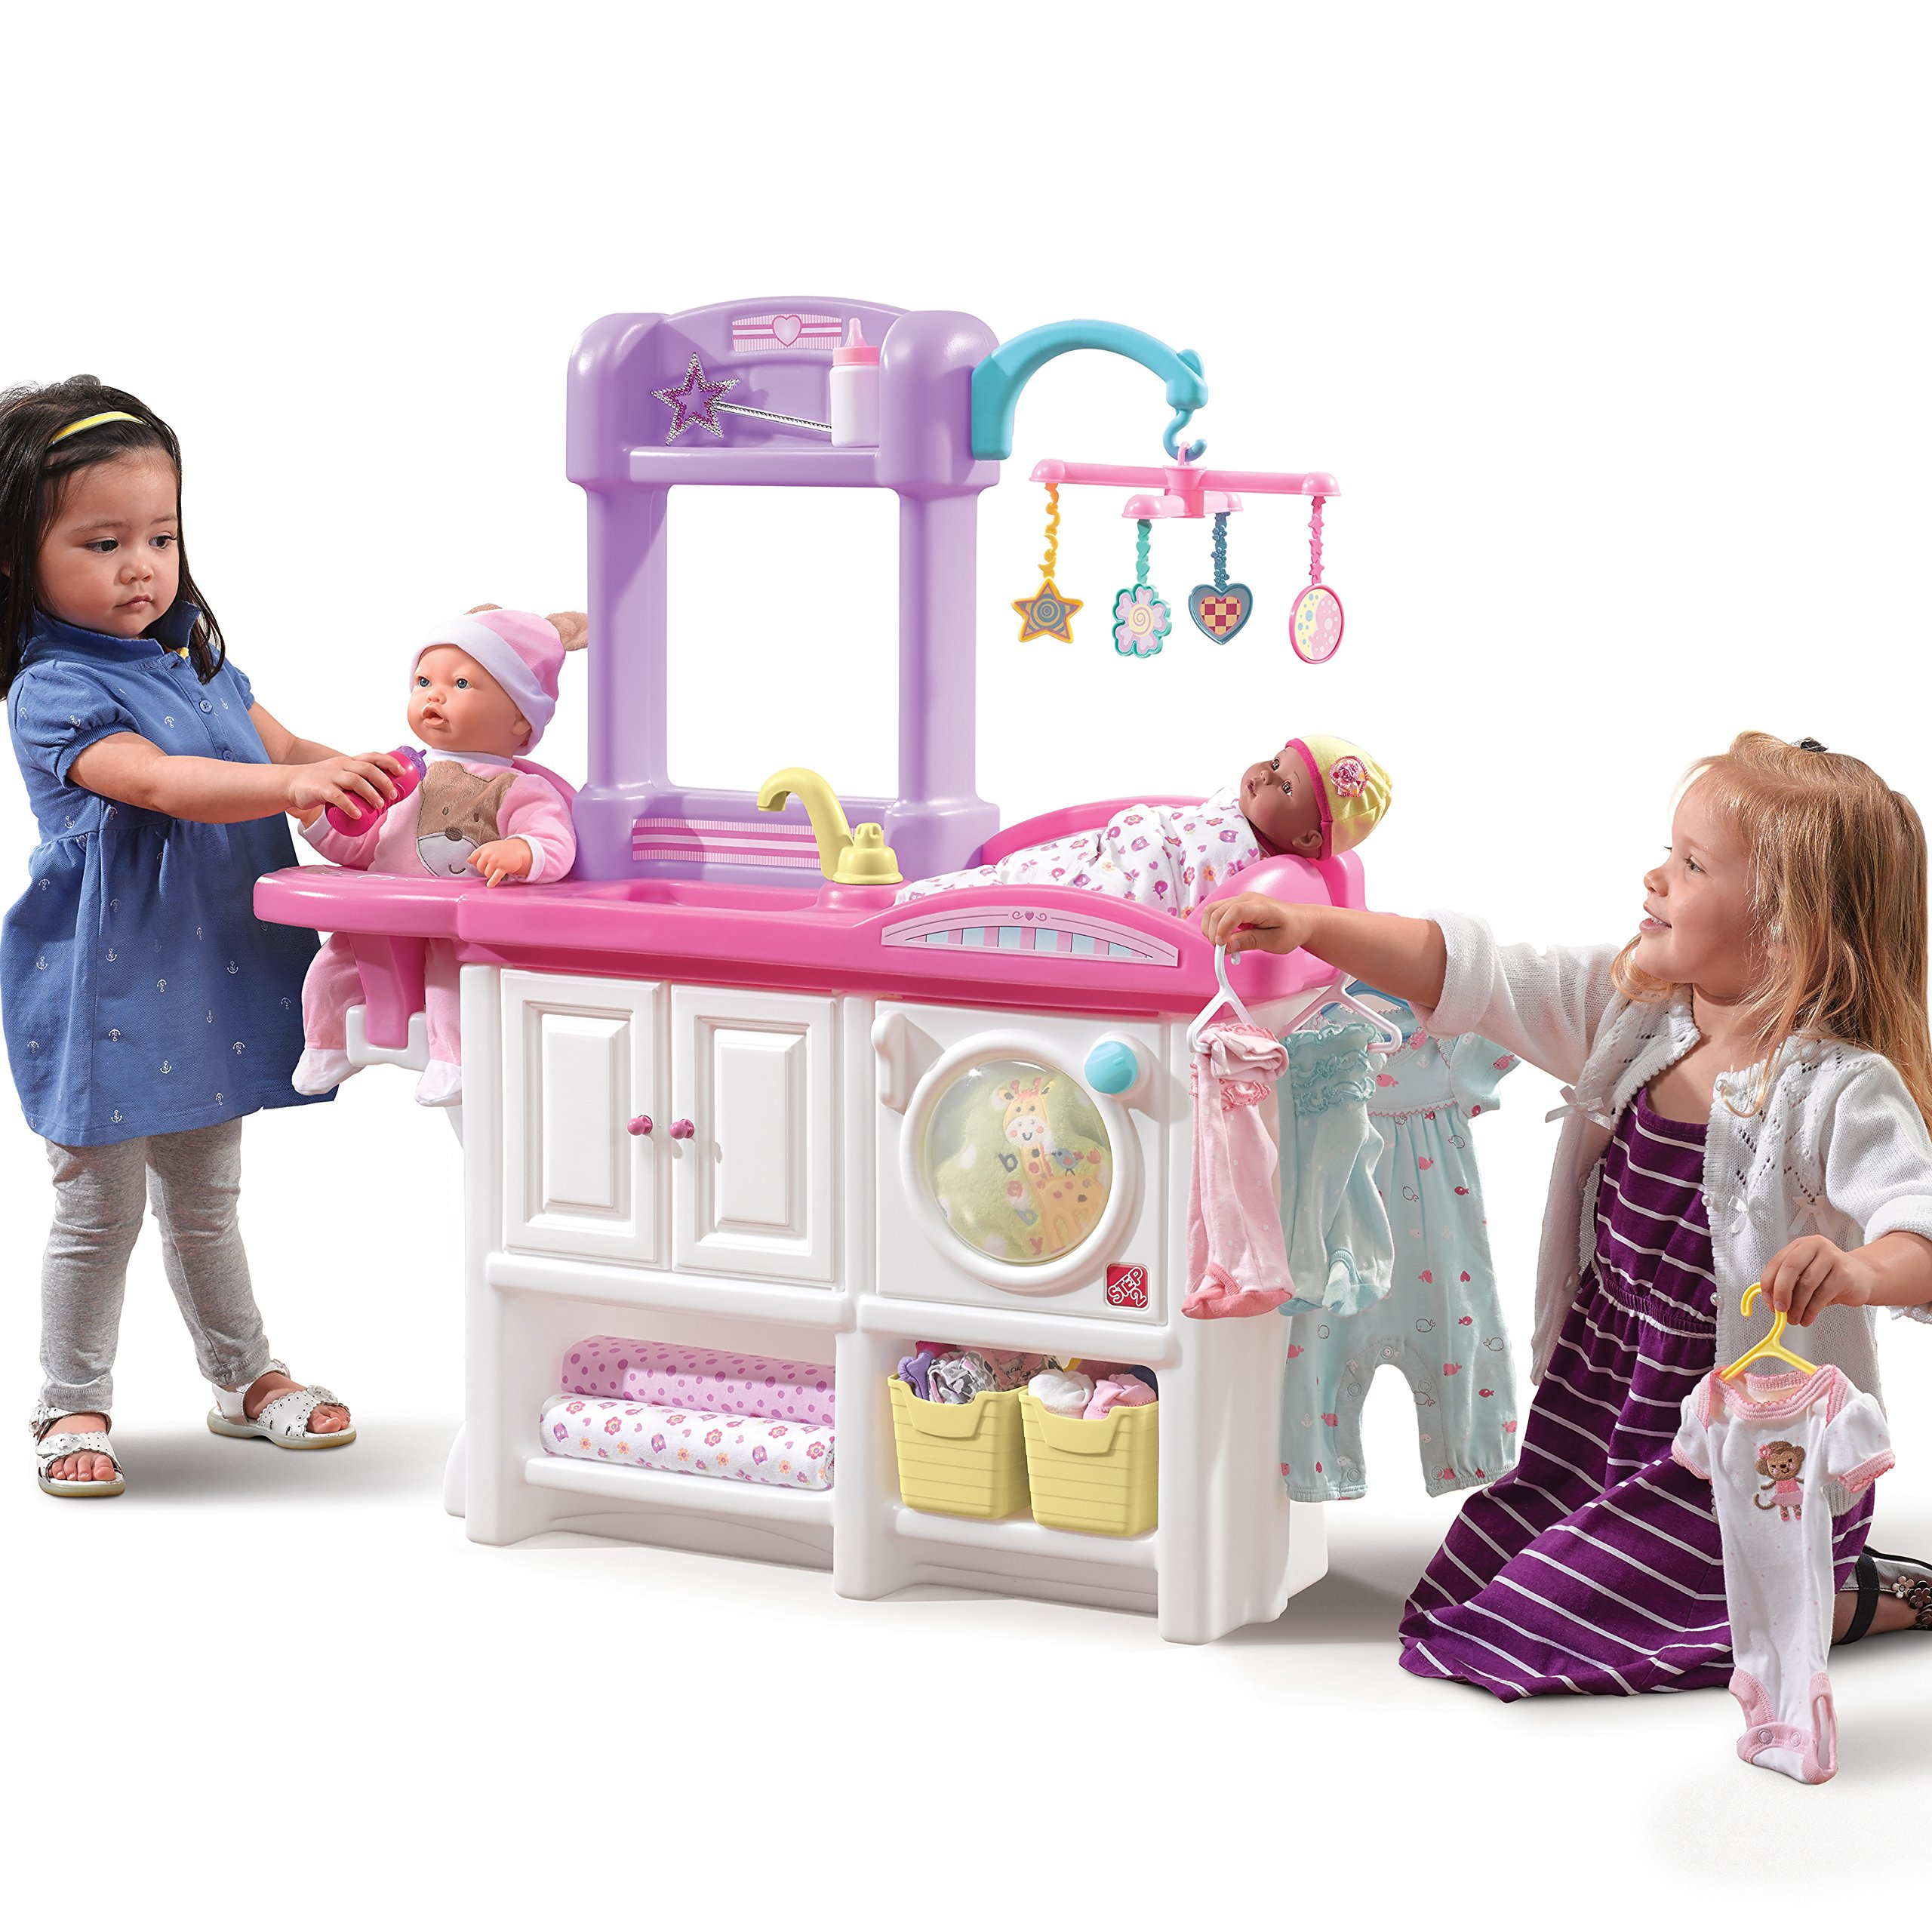 Etonnant Step2 Love And Care Deluxe Nursery Playset